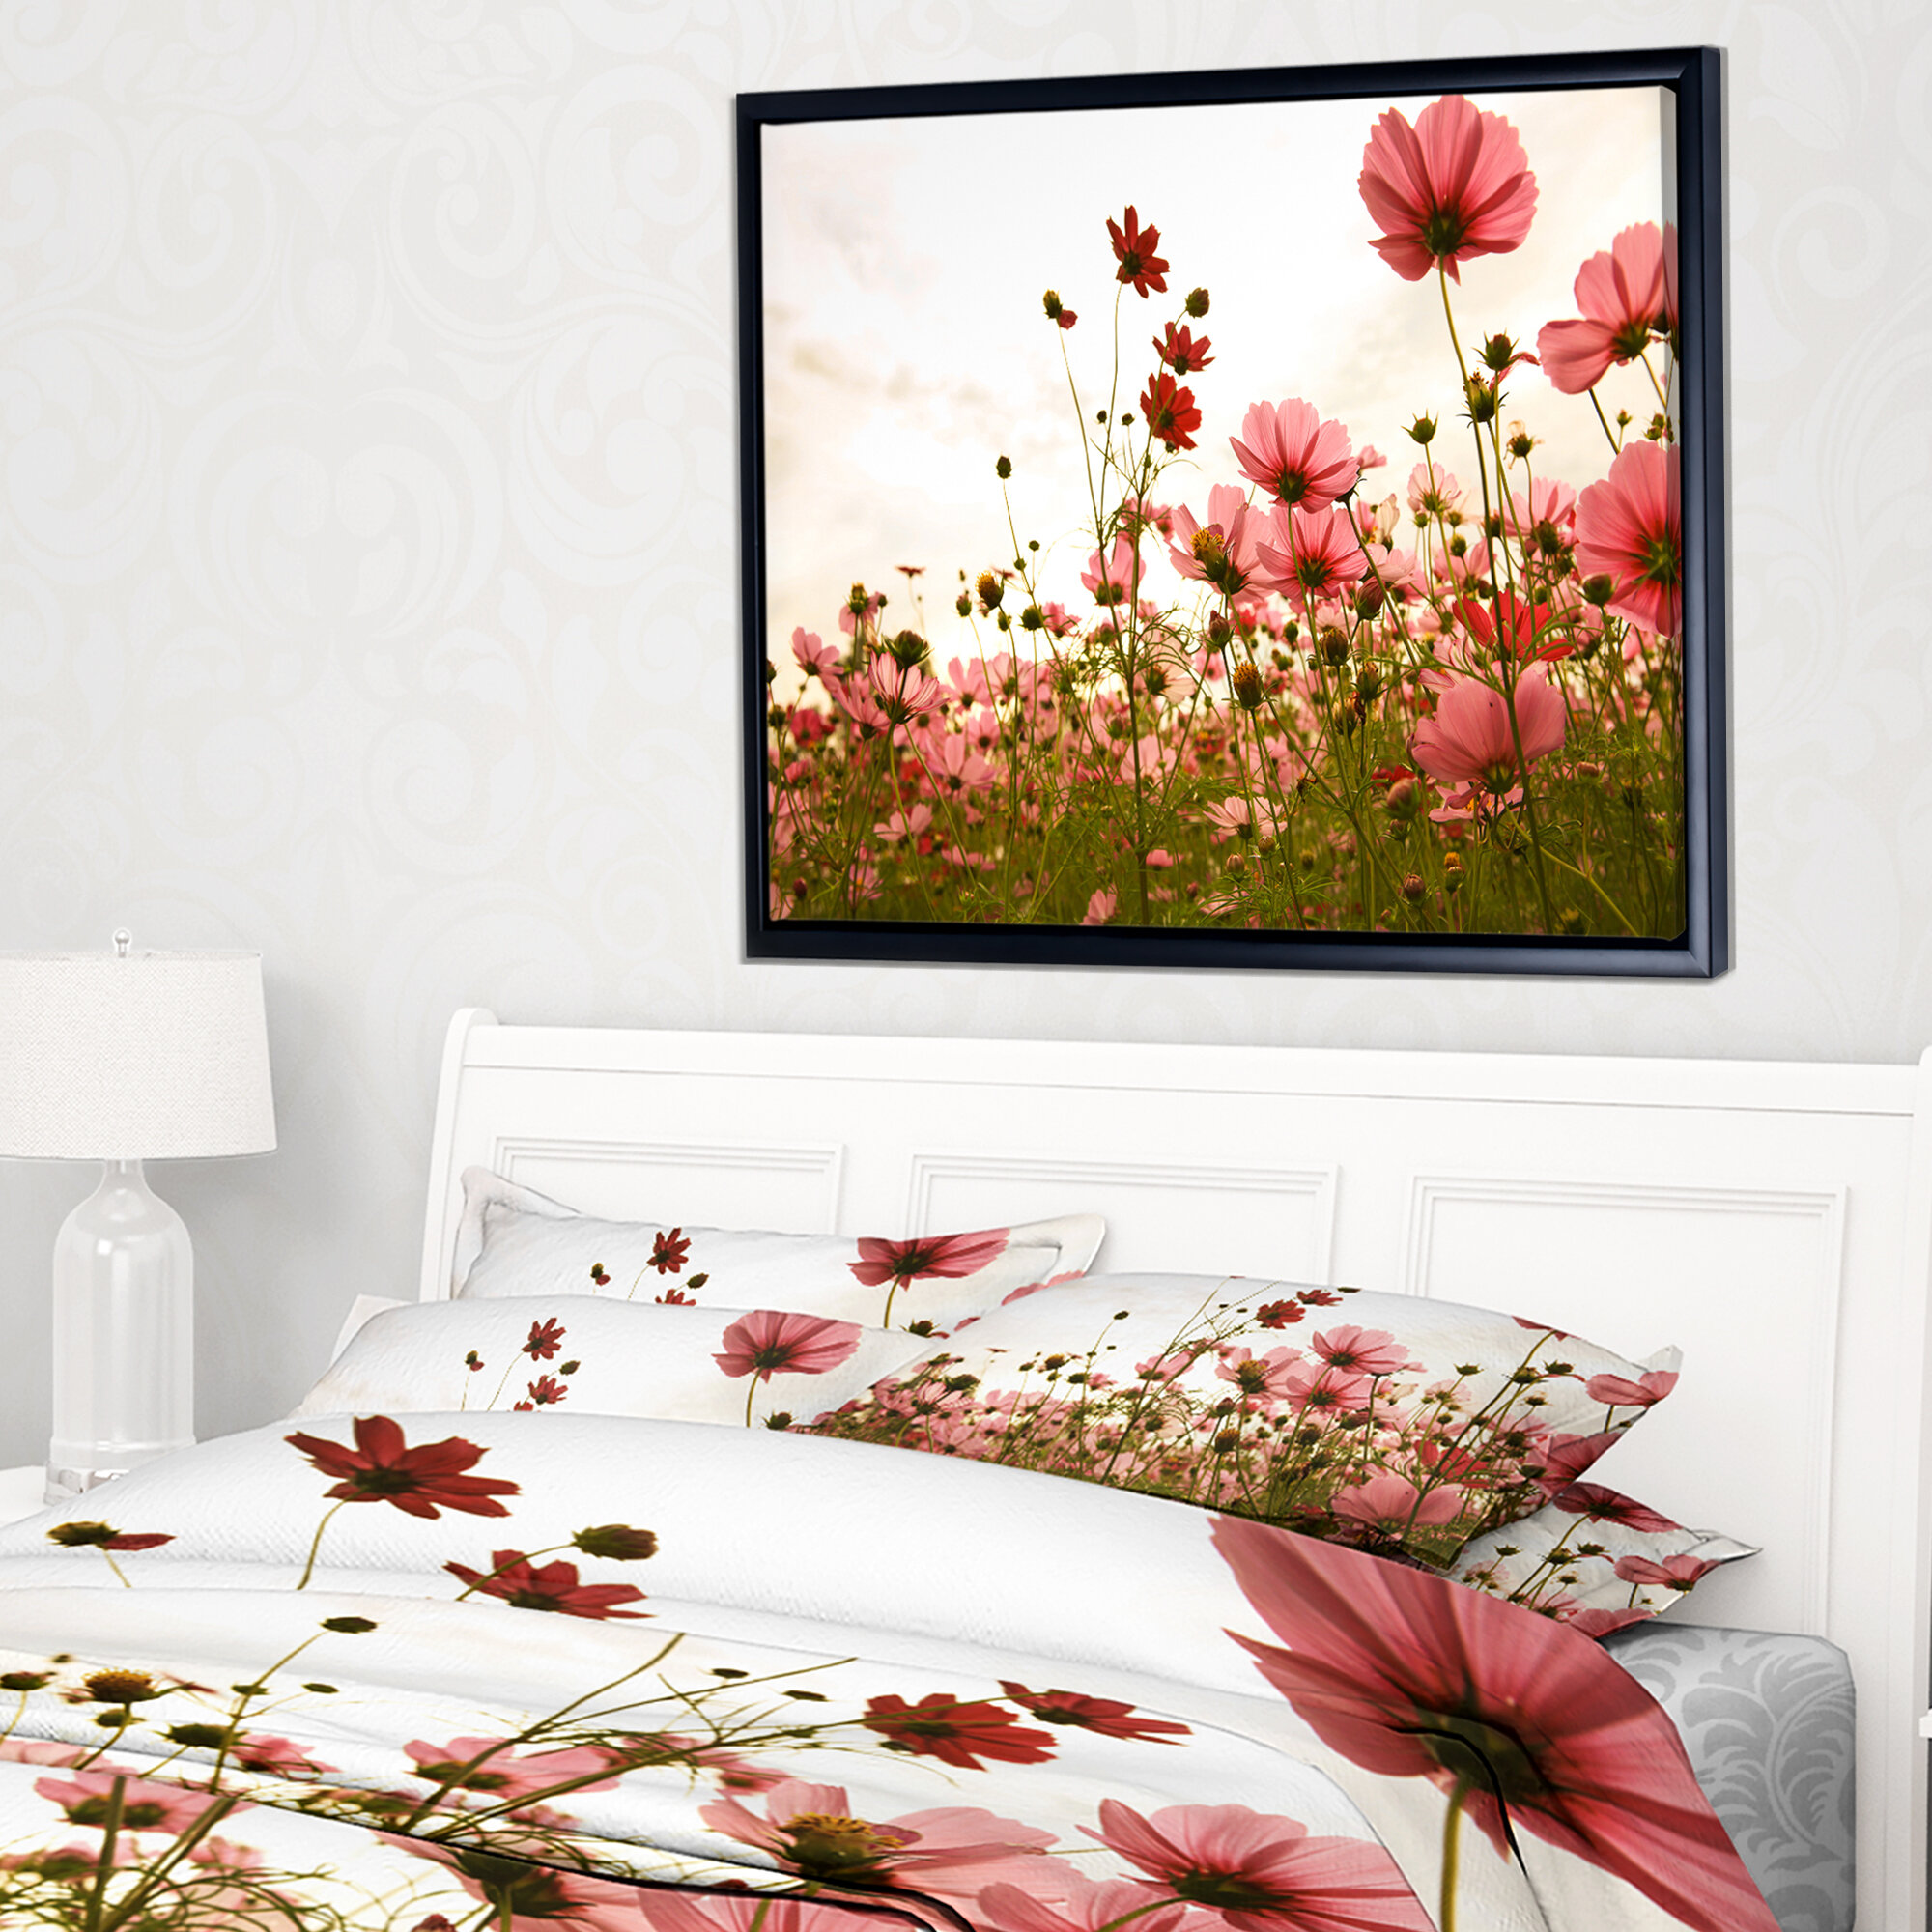 East Urban Home Beautiful Cosmos Flowers Garden Framed Photographic Print On Wrapped Canvas Wayfair